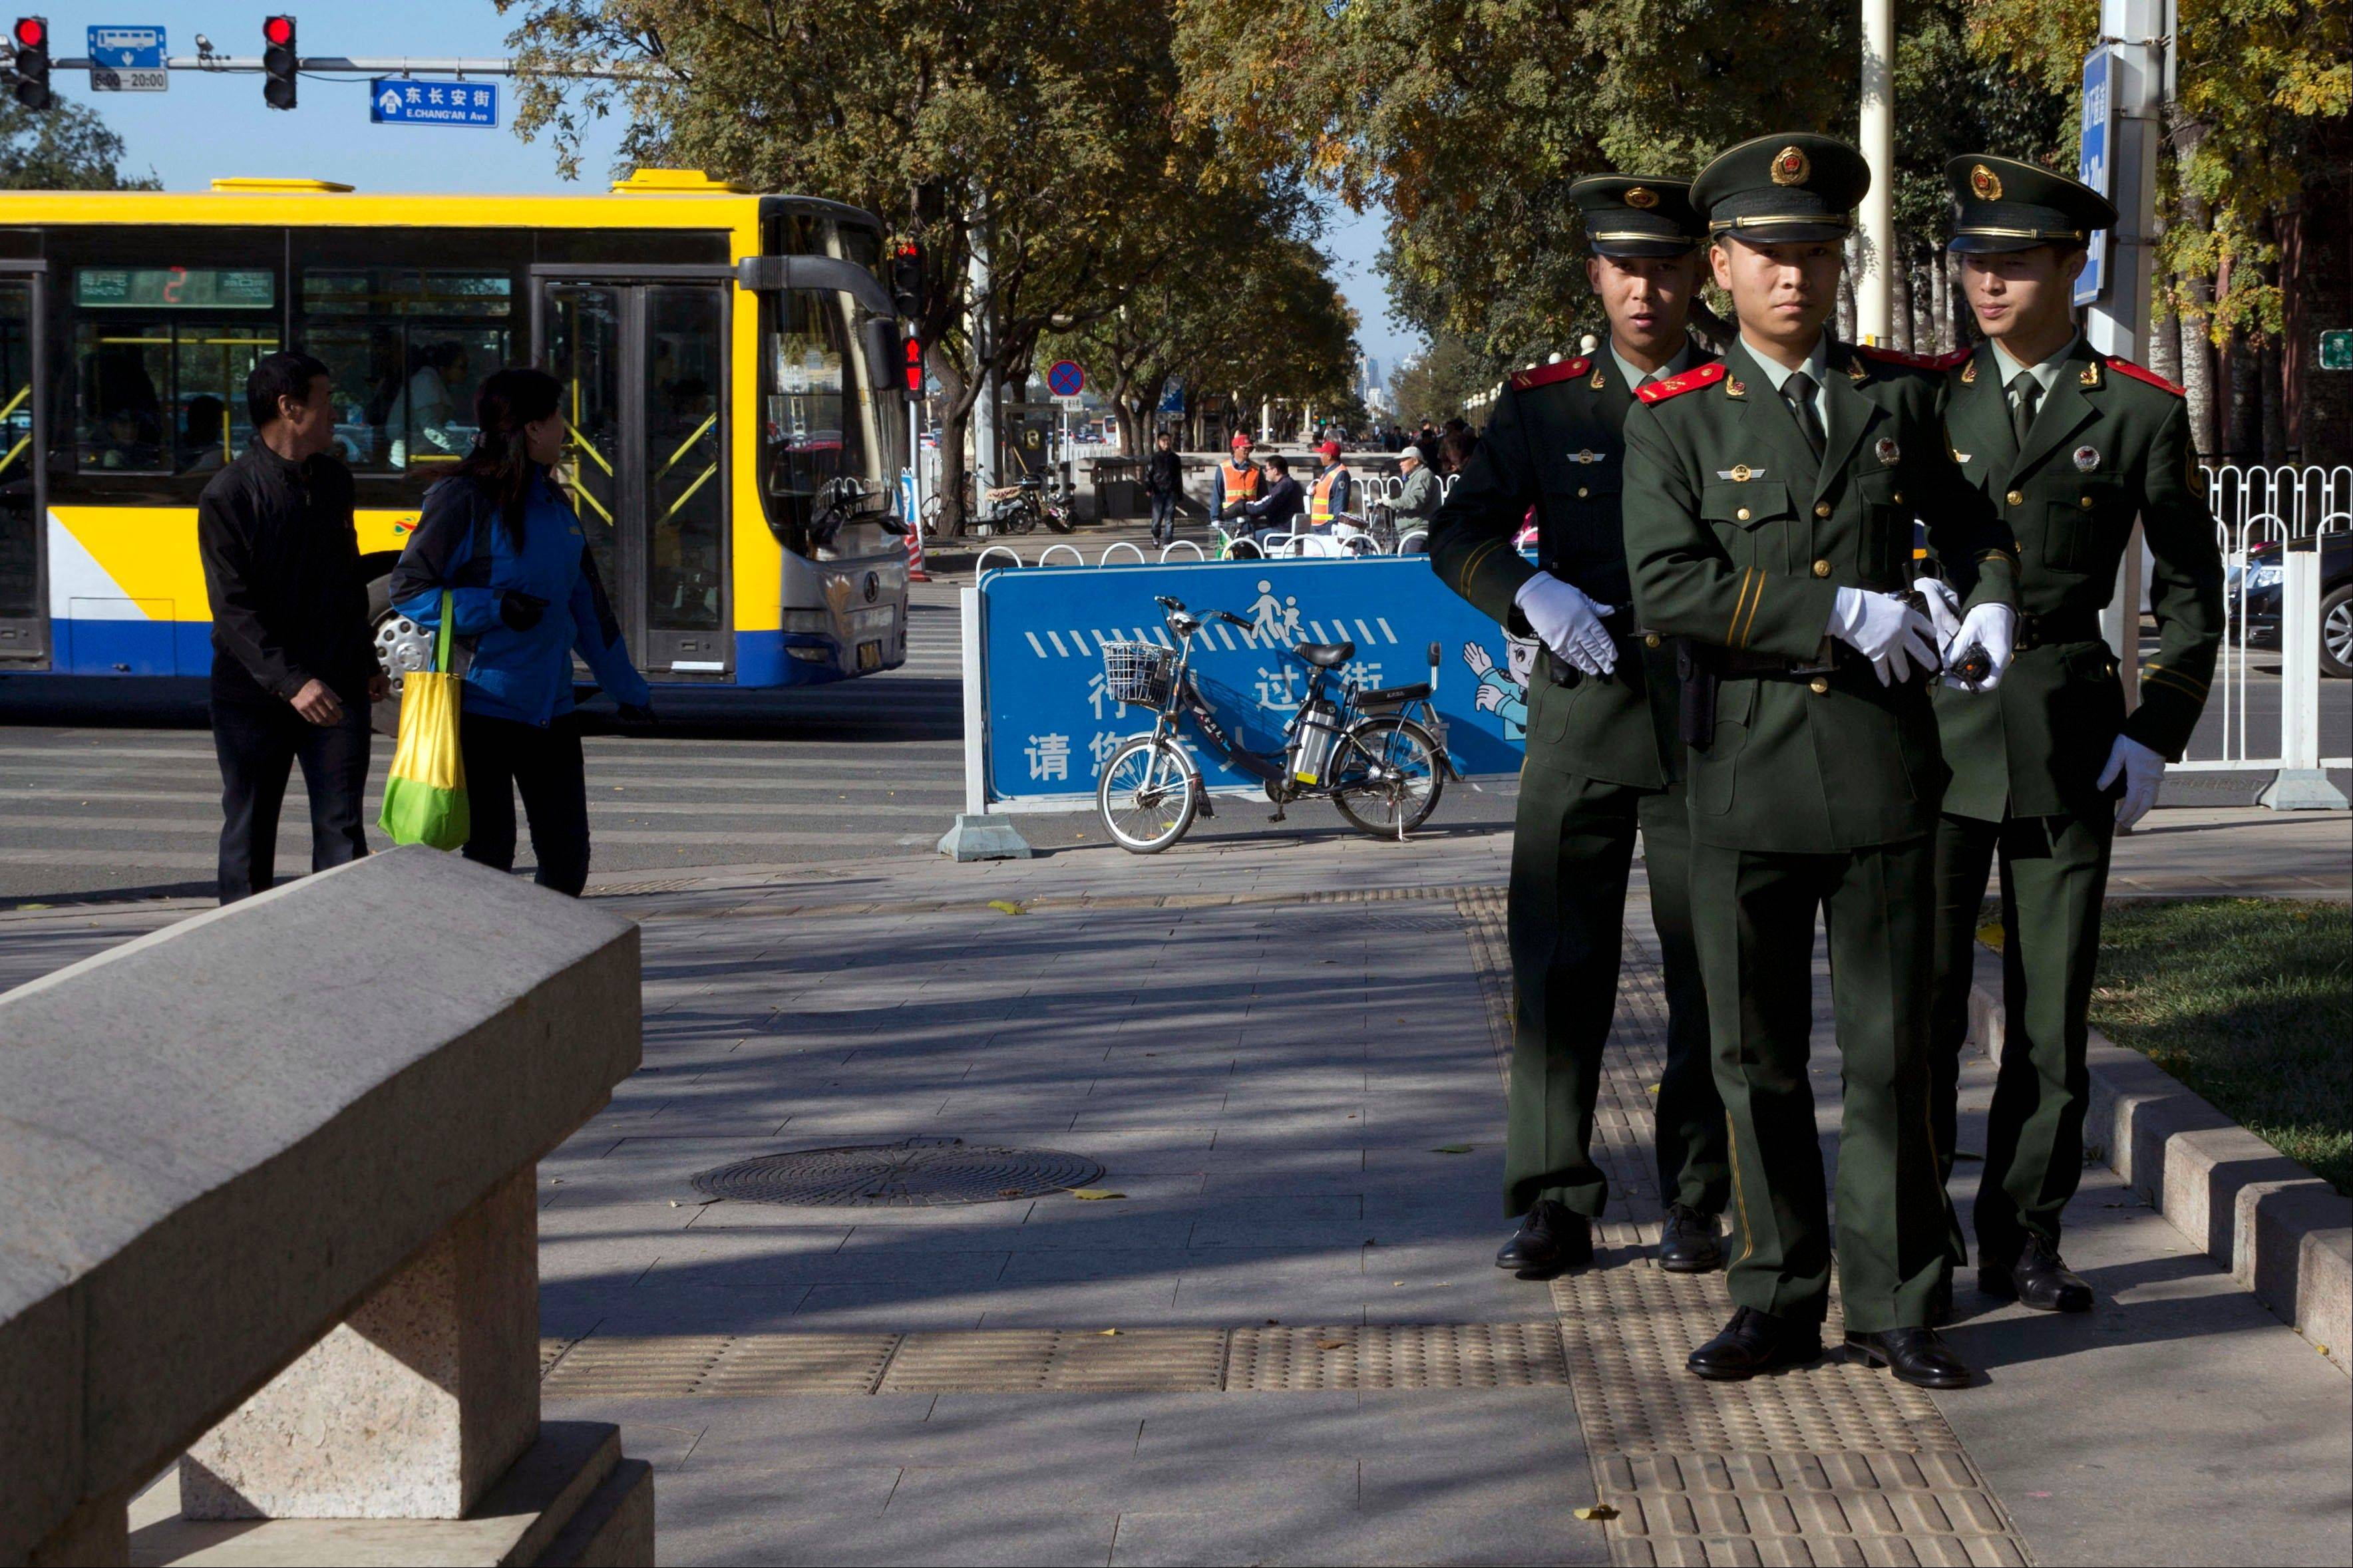 Police focus on Uighurs after Tiananmen car attack